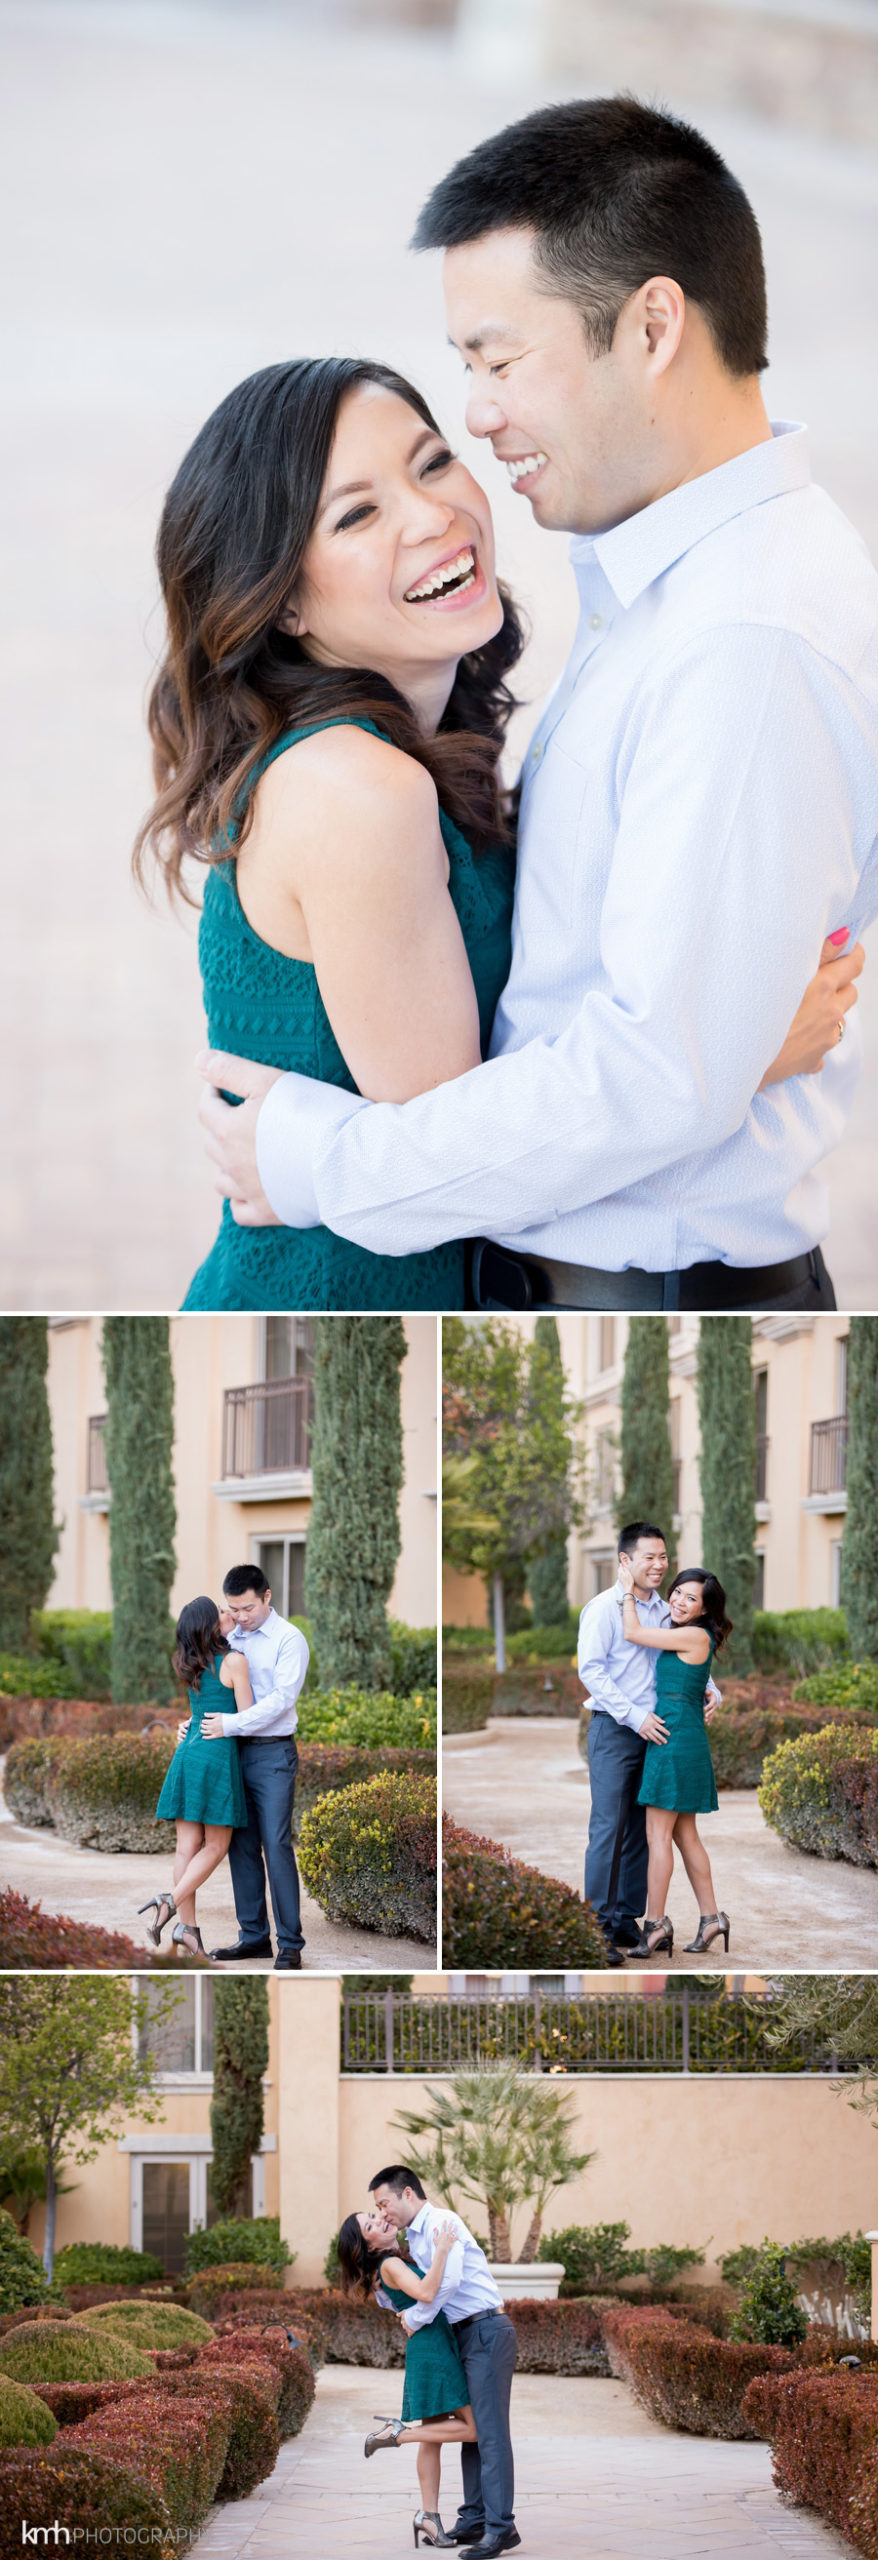 lake las vegas engagement photography session kmh photography